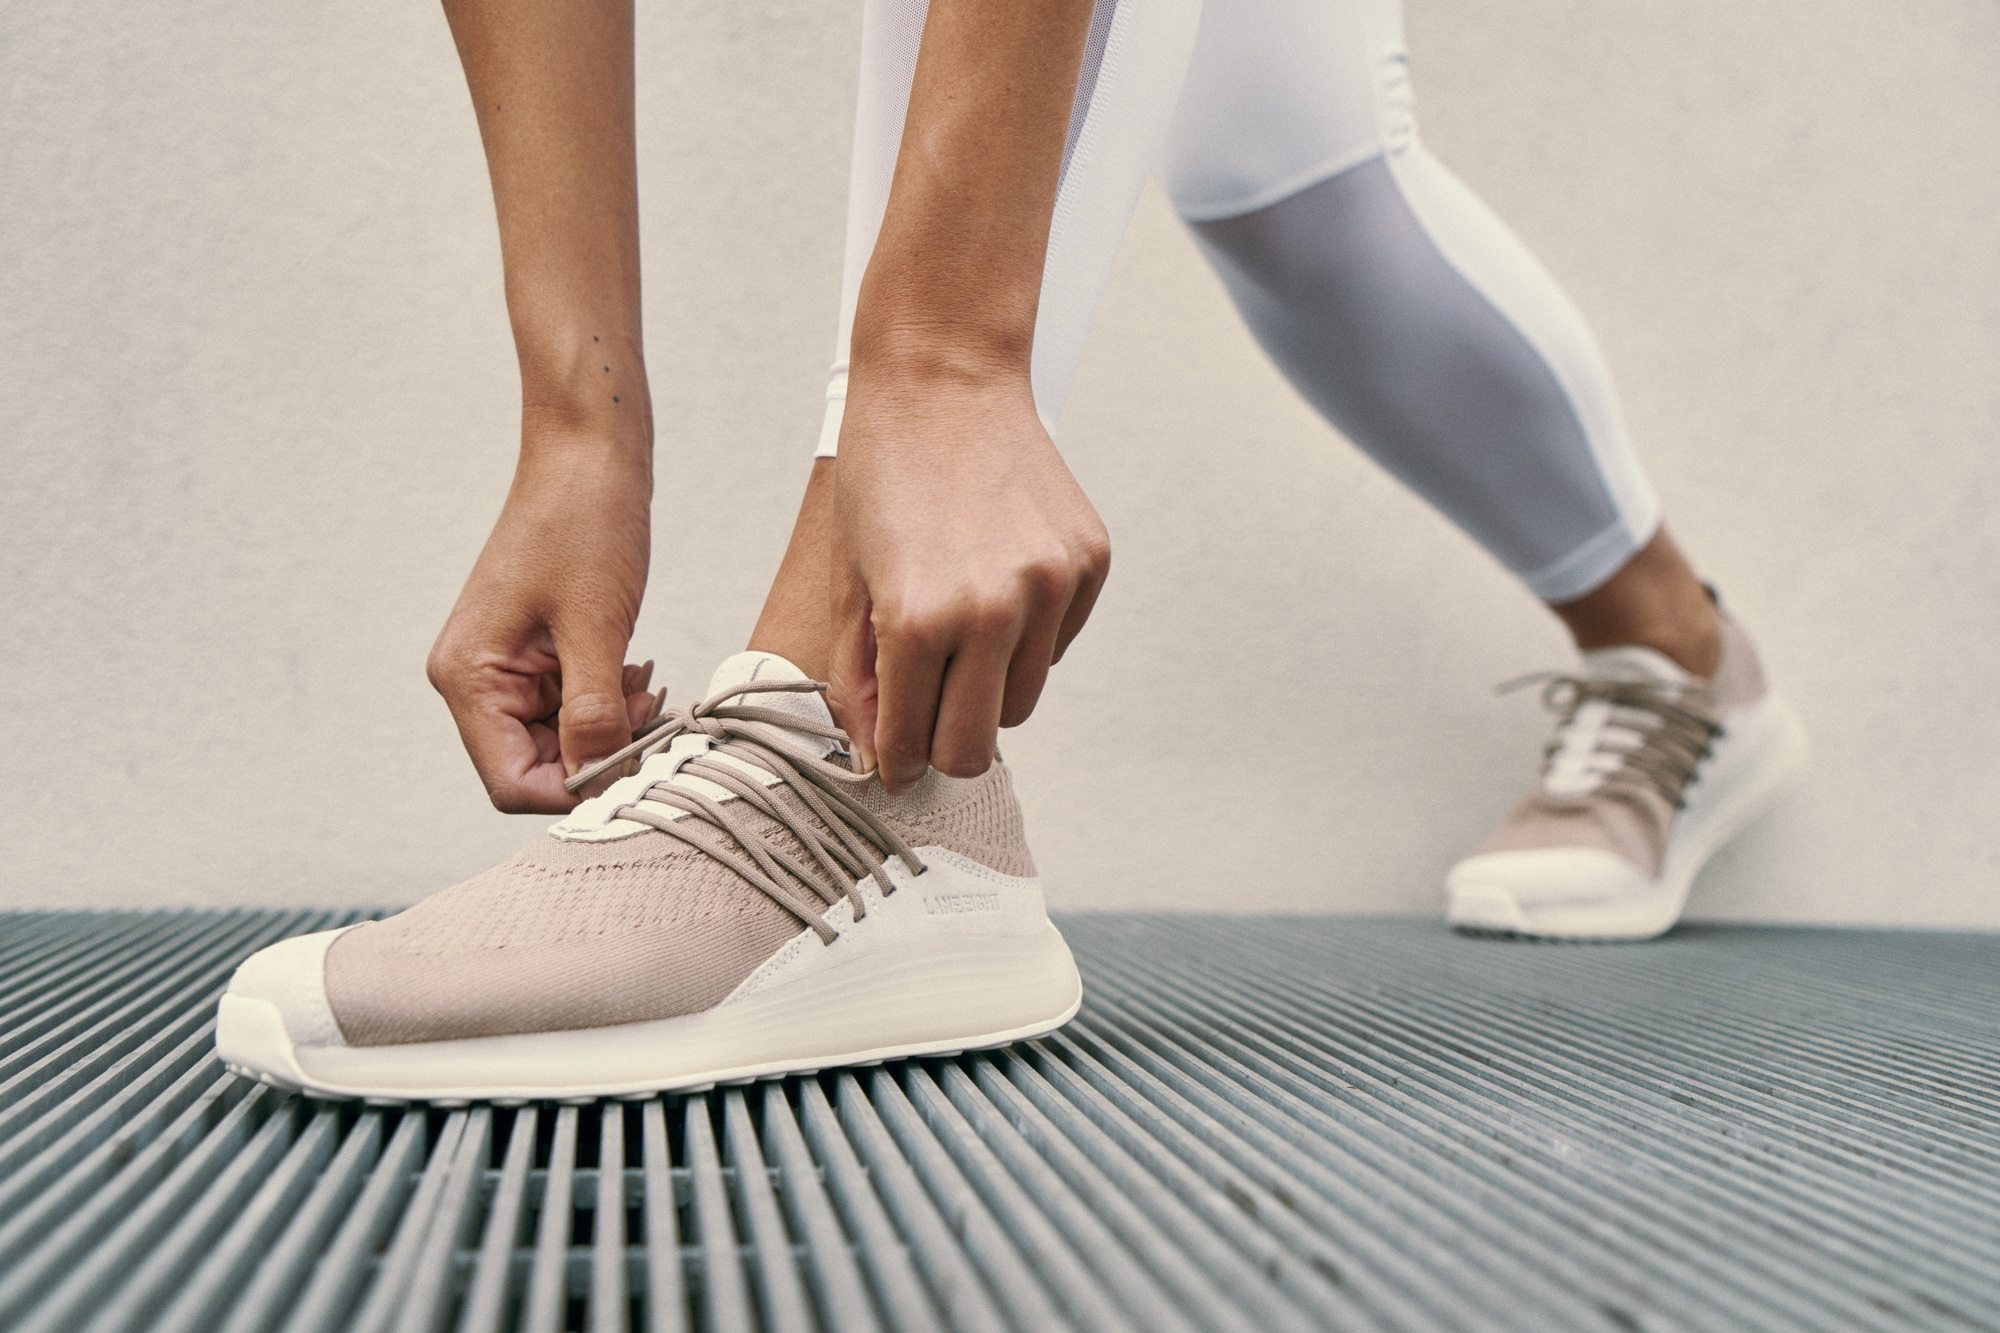 LANE EIGHT Trainer AD 1 on foot